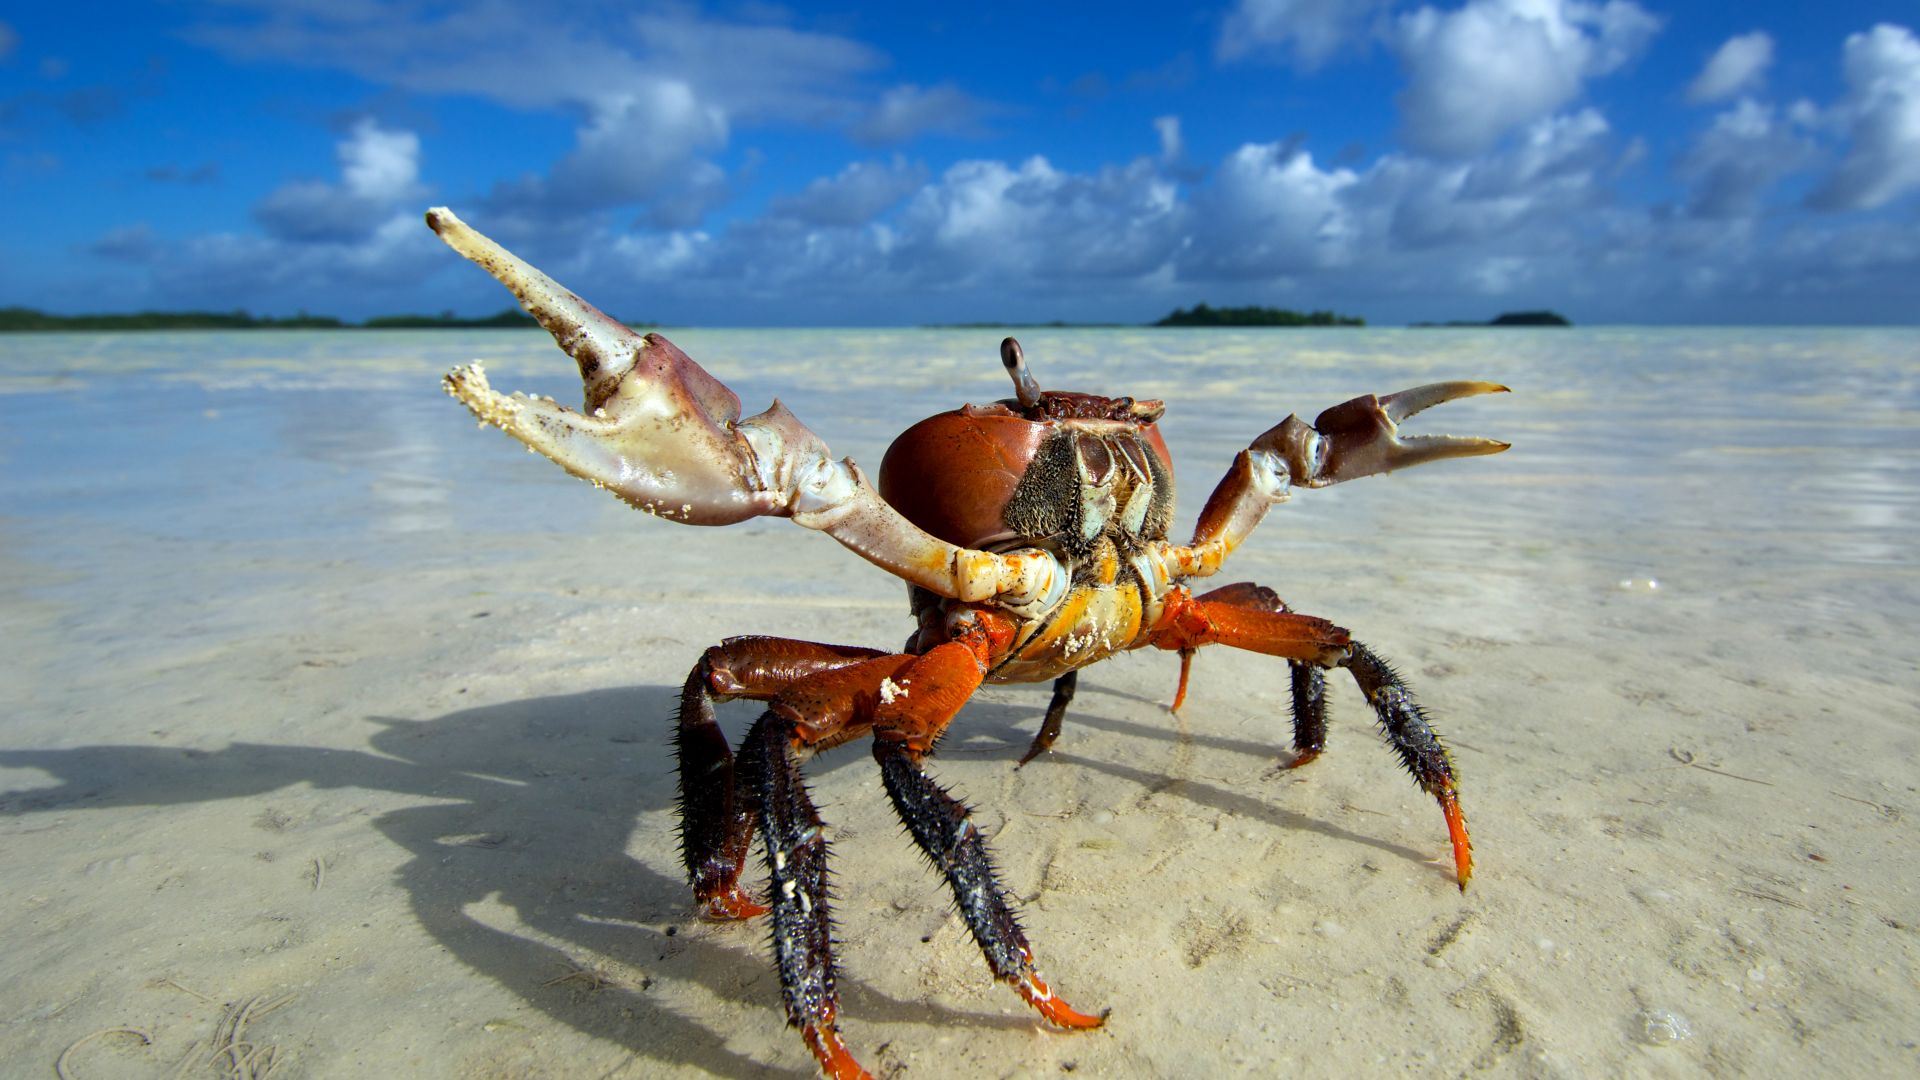 Pictures of human crabs